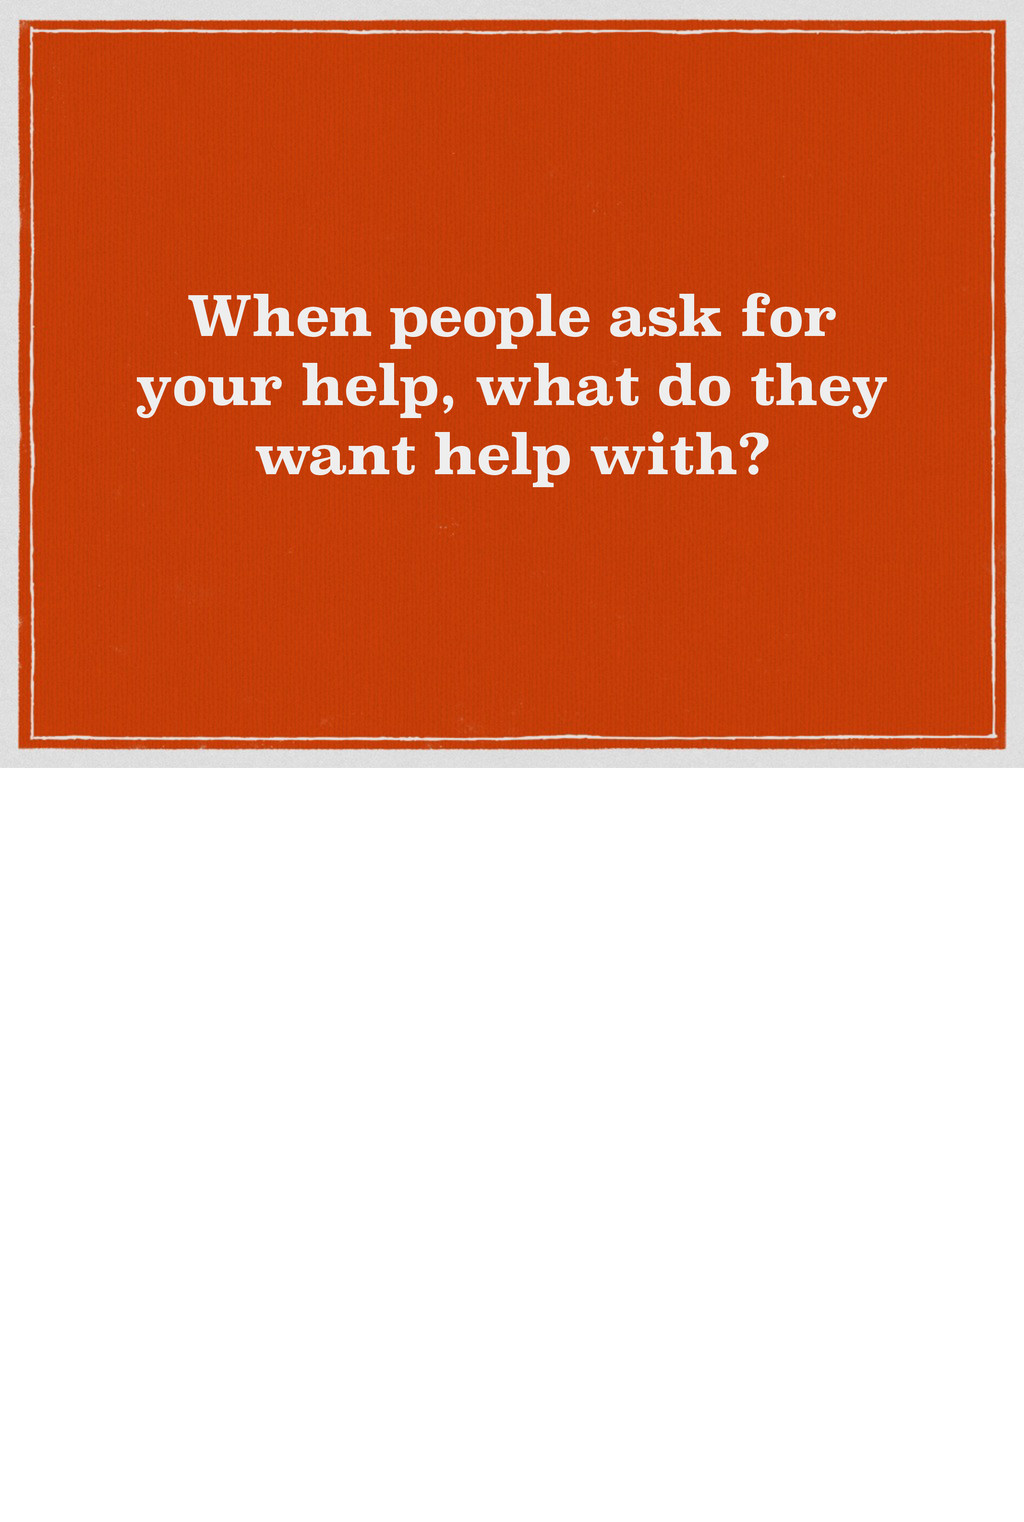 When people ask for your help, what do they wan...